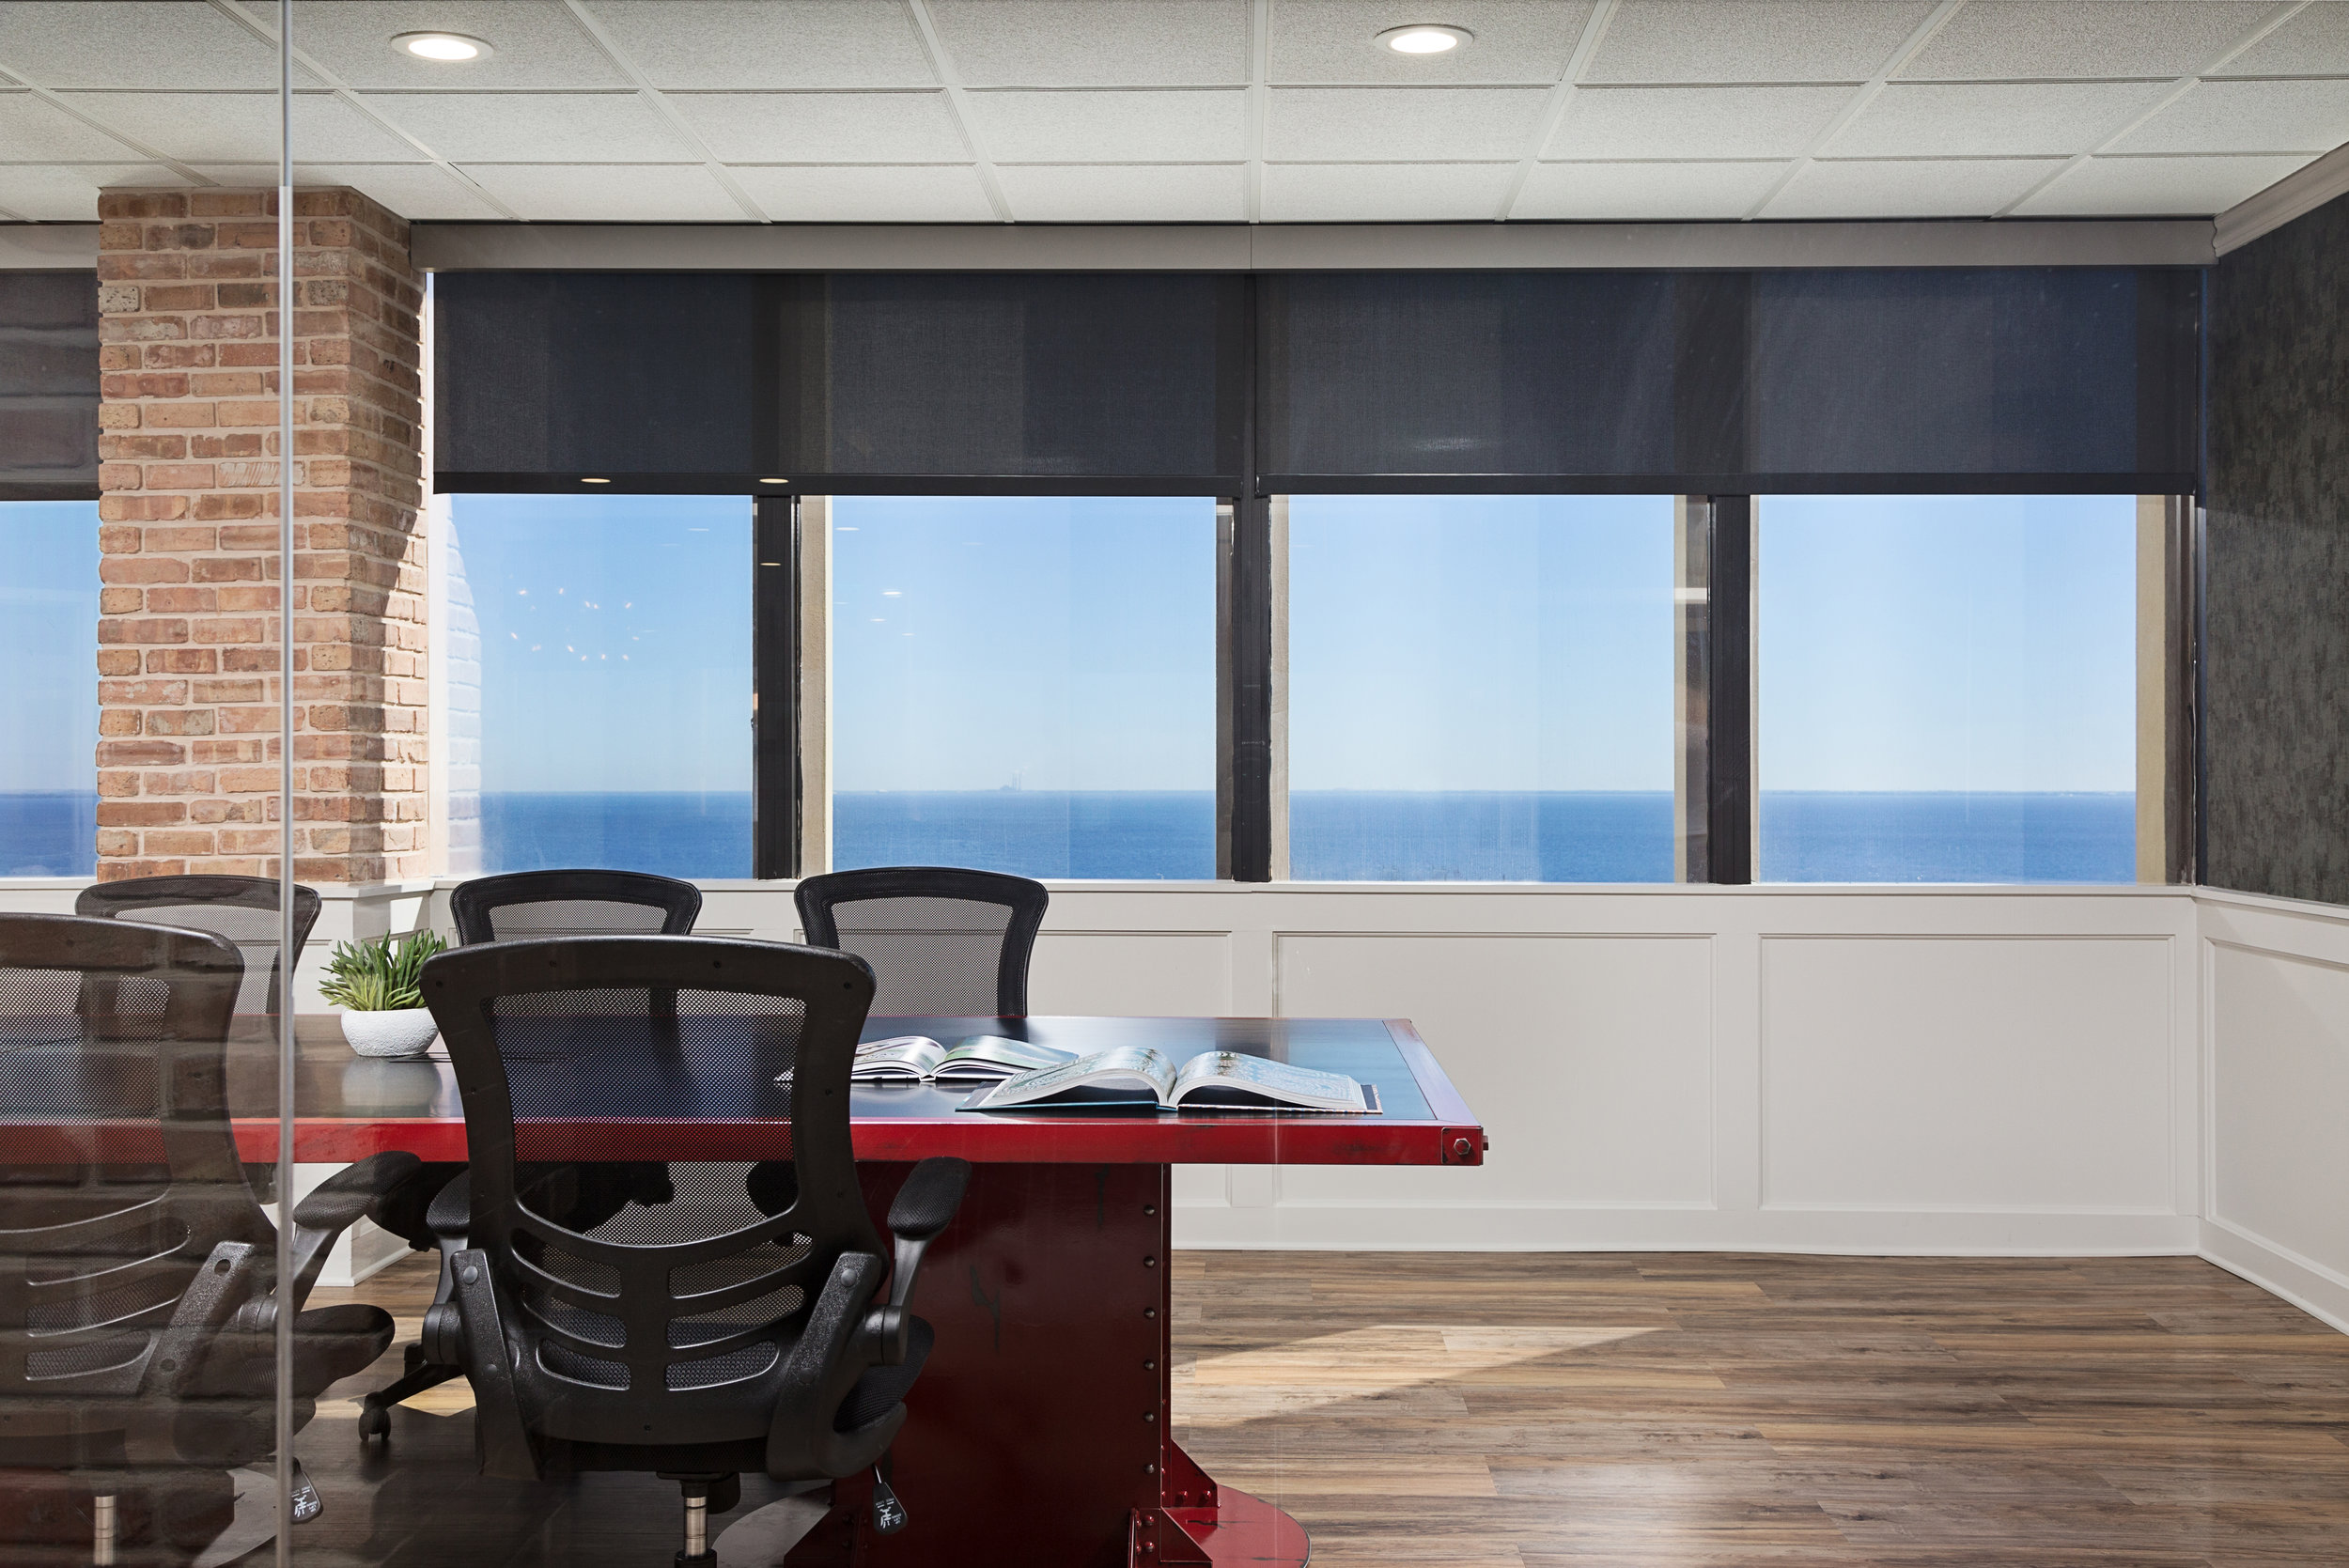 CONFERENCE ROOM OVERLOOKING TAMPA BAY | NATIVE HOUSE PHOTOGRAPHY